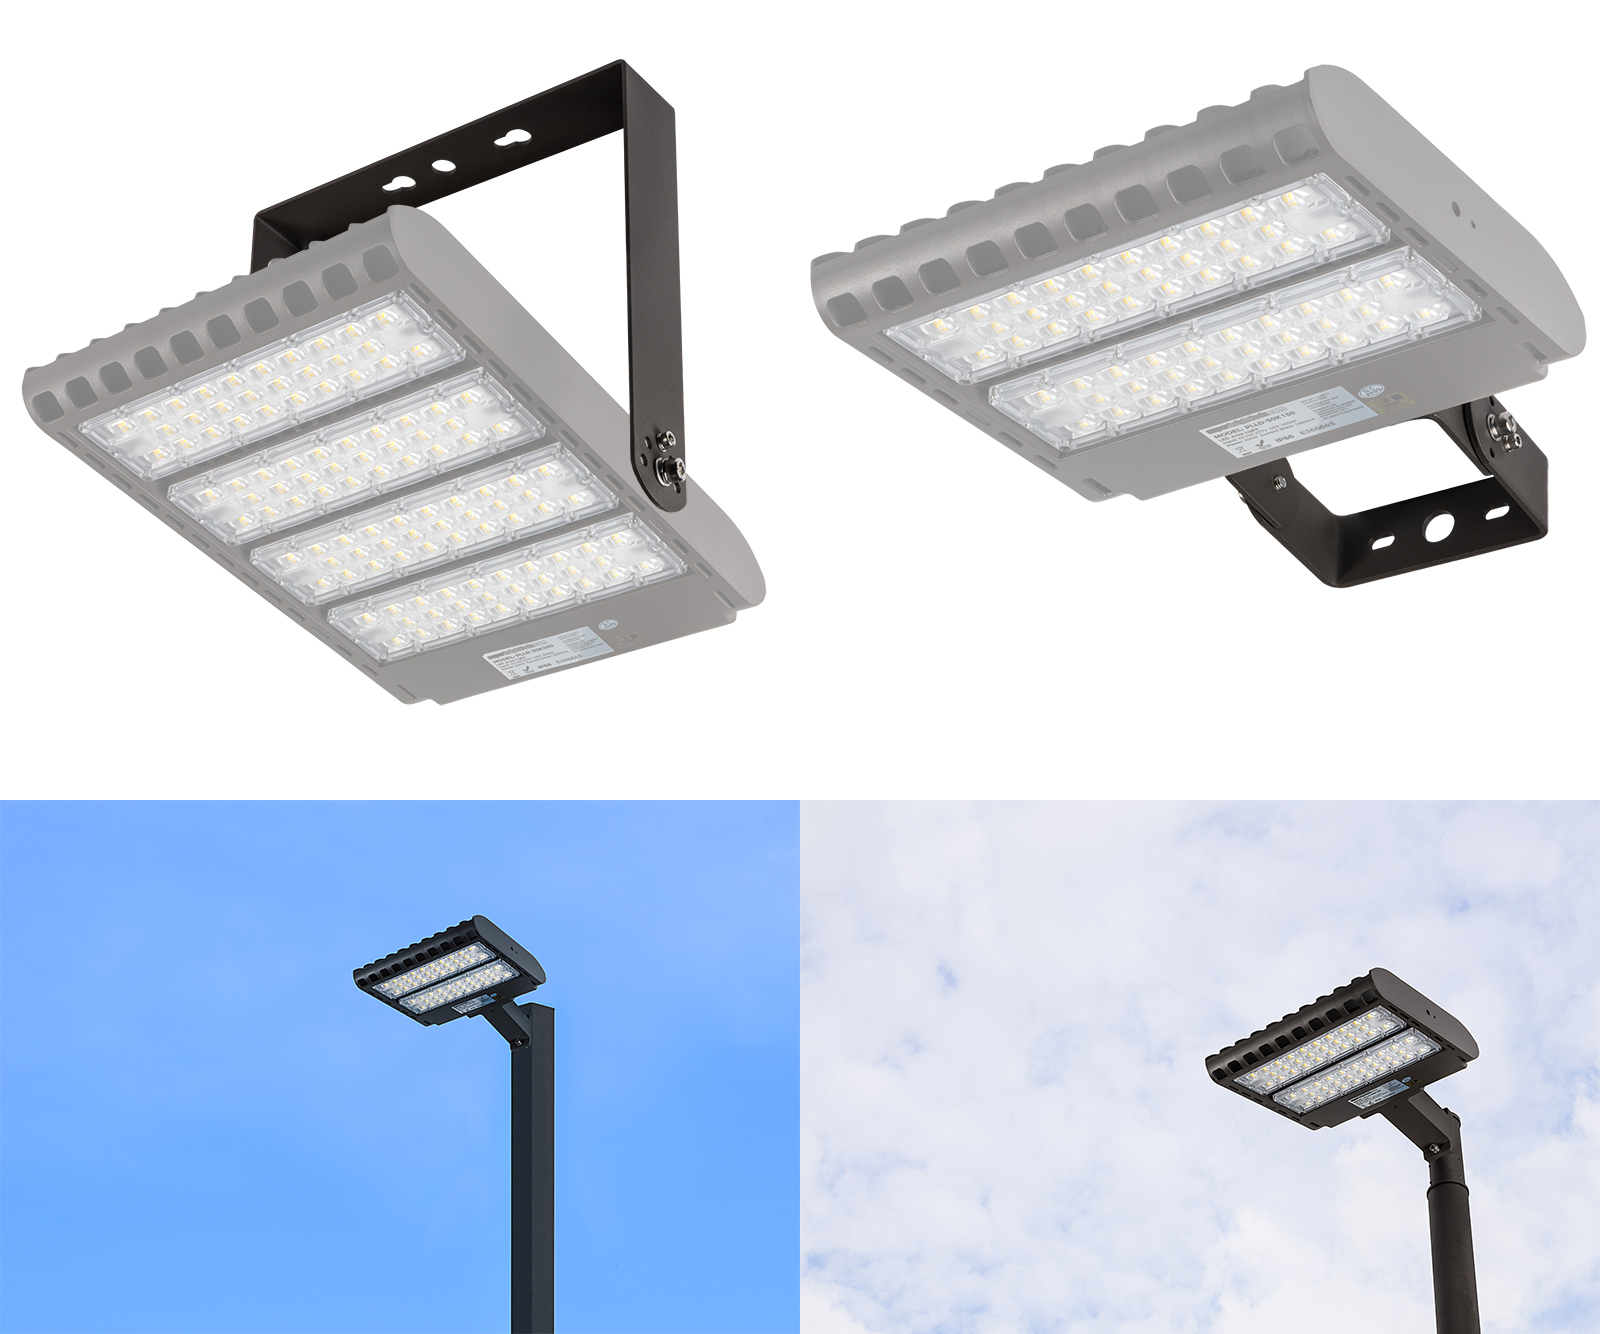 LED Parking Lot Lights/Area Lights: Bright, Dependable